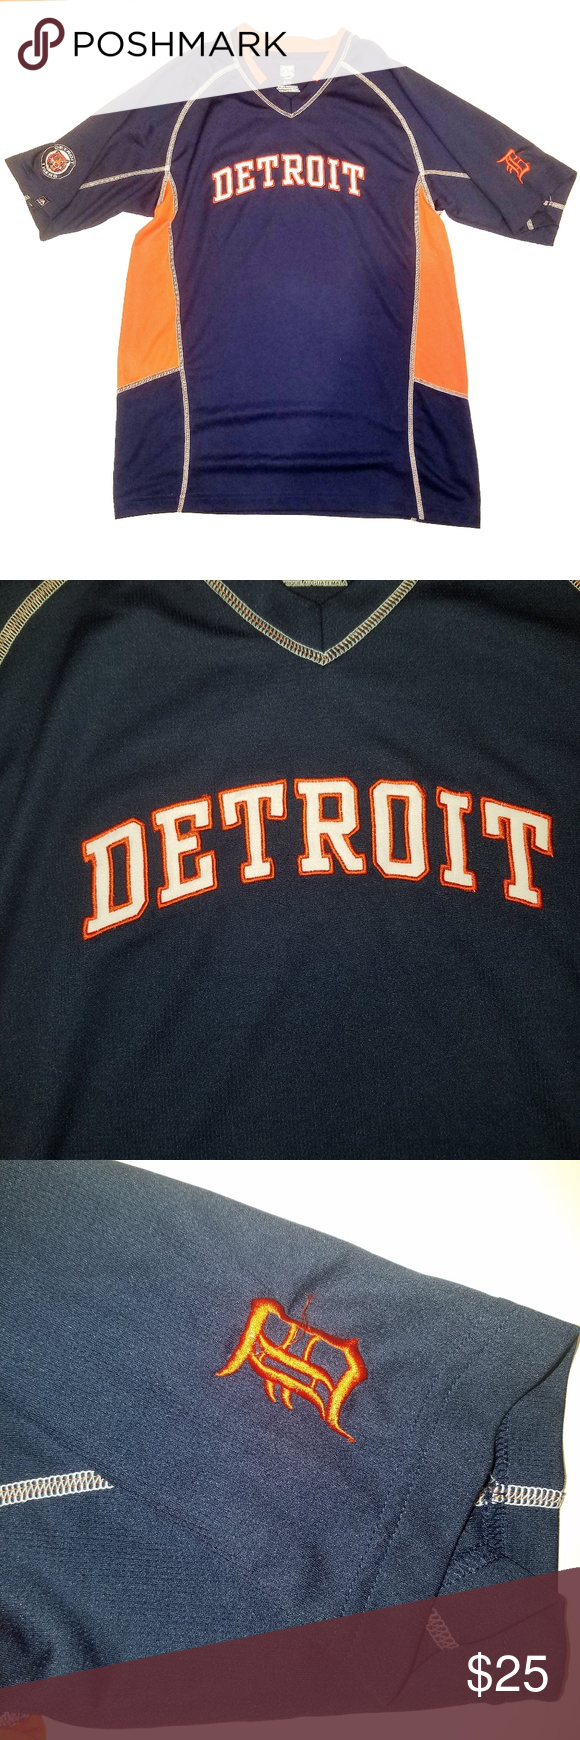 Detroit Tigers Cooperstown Pullover Jersey Majestic Shirts Sweatshirt Shirt Pullover [ 1740 x 580 Pixel ]